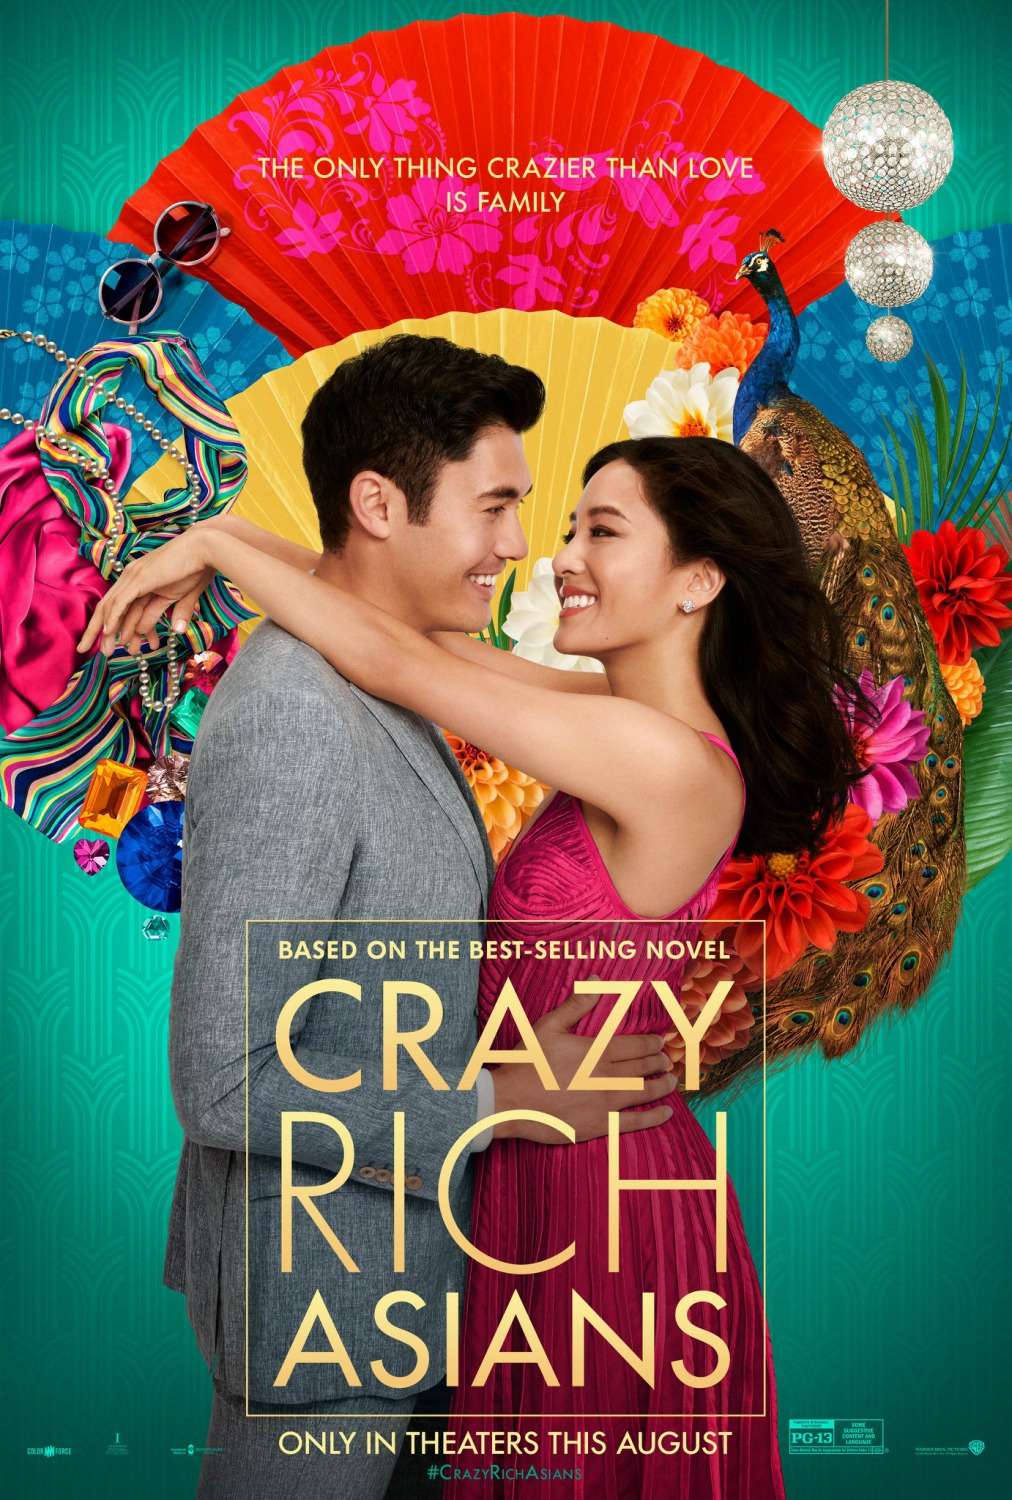 Crazy Rich Asians No. 1 at weekend box office